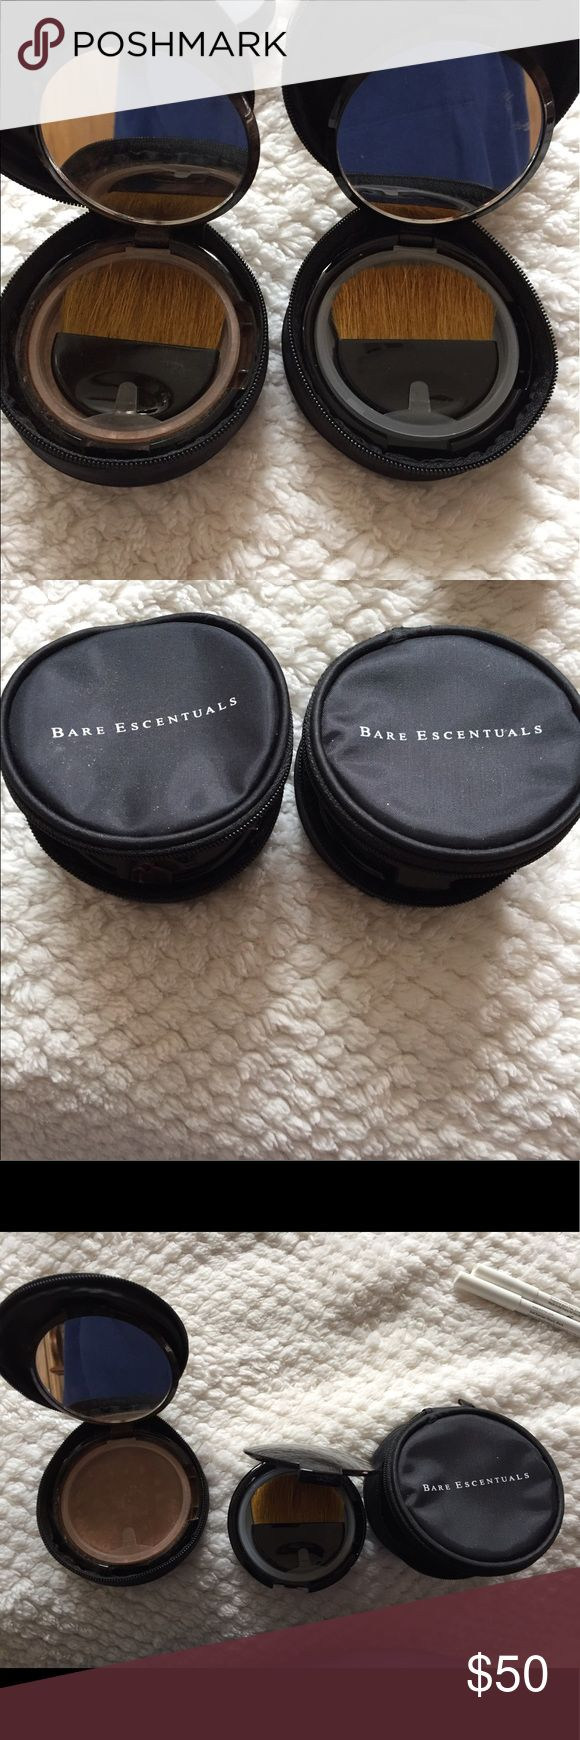 BARE ESCENTUALS BUNDLE. BARE ESCENTUALS  BUNDLE. ONE PRE FILLED.   ONE NEW .  GREAT FOR TRAVEL OR IN PURSE.  COMES WITH CARRY CASE, PLASTIC HOLDER, BRUSH.  CAN BE USED FOR FOUNDATIONS POWER ETC. Bare Escentuals Makeup Face Powder